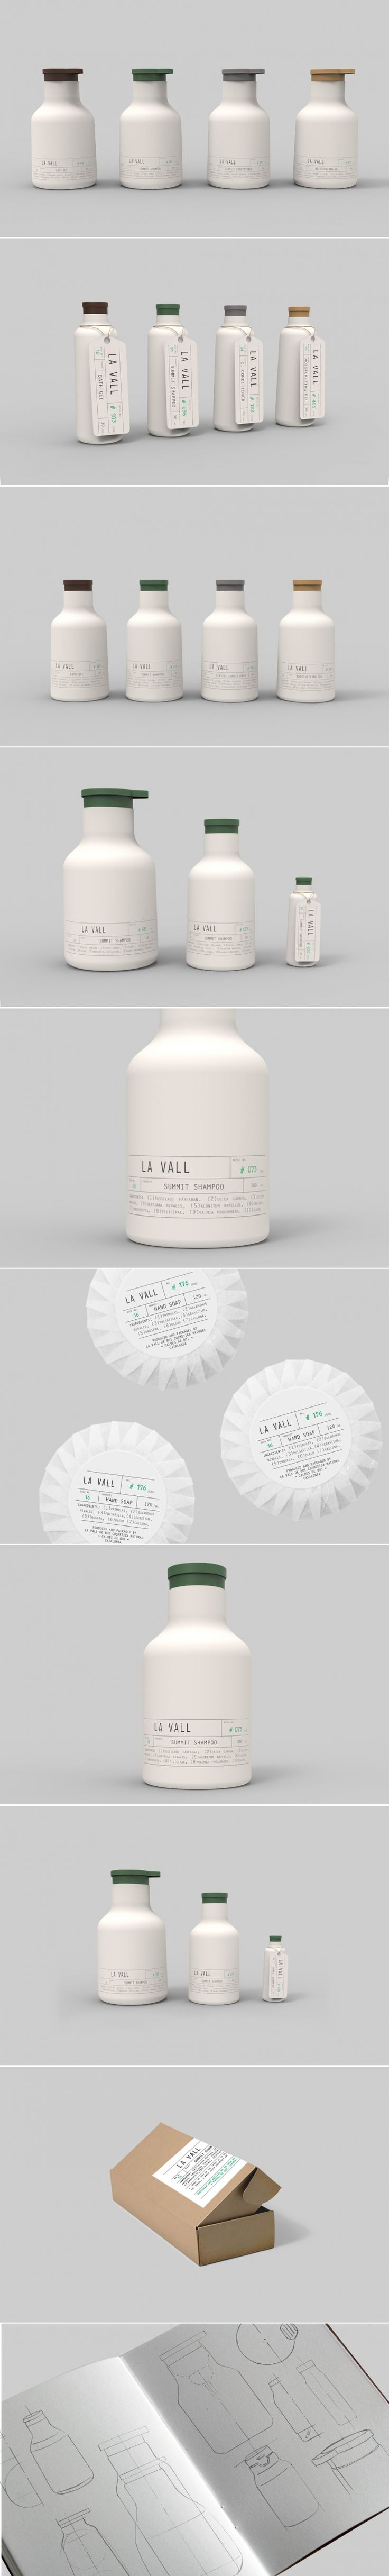 La Vall Is an Elegant Minimalistic Personal Care Concept — The Dieline | Packaging & Branding Design & Innovation News